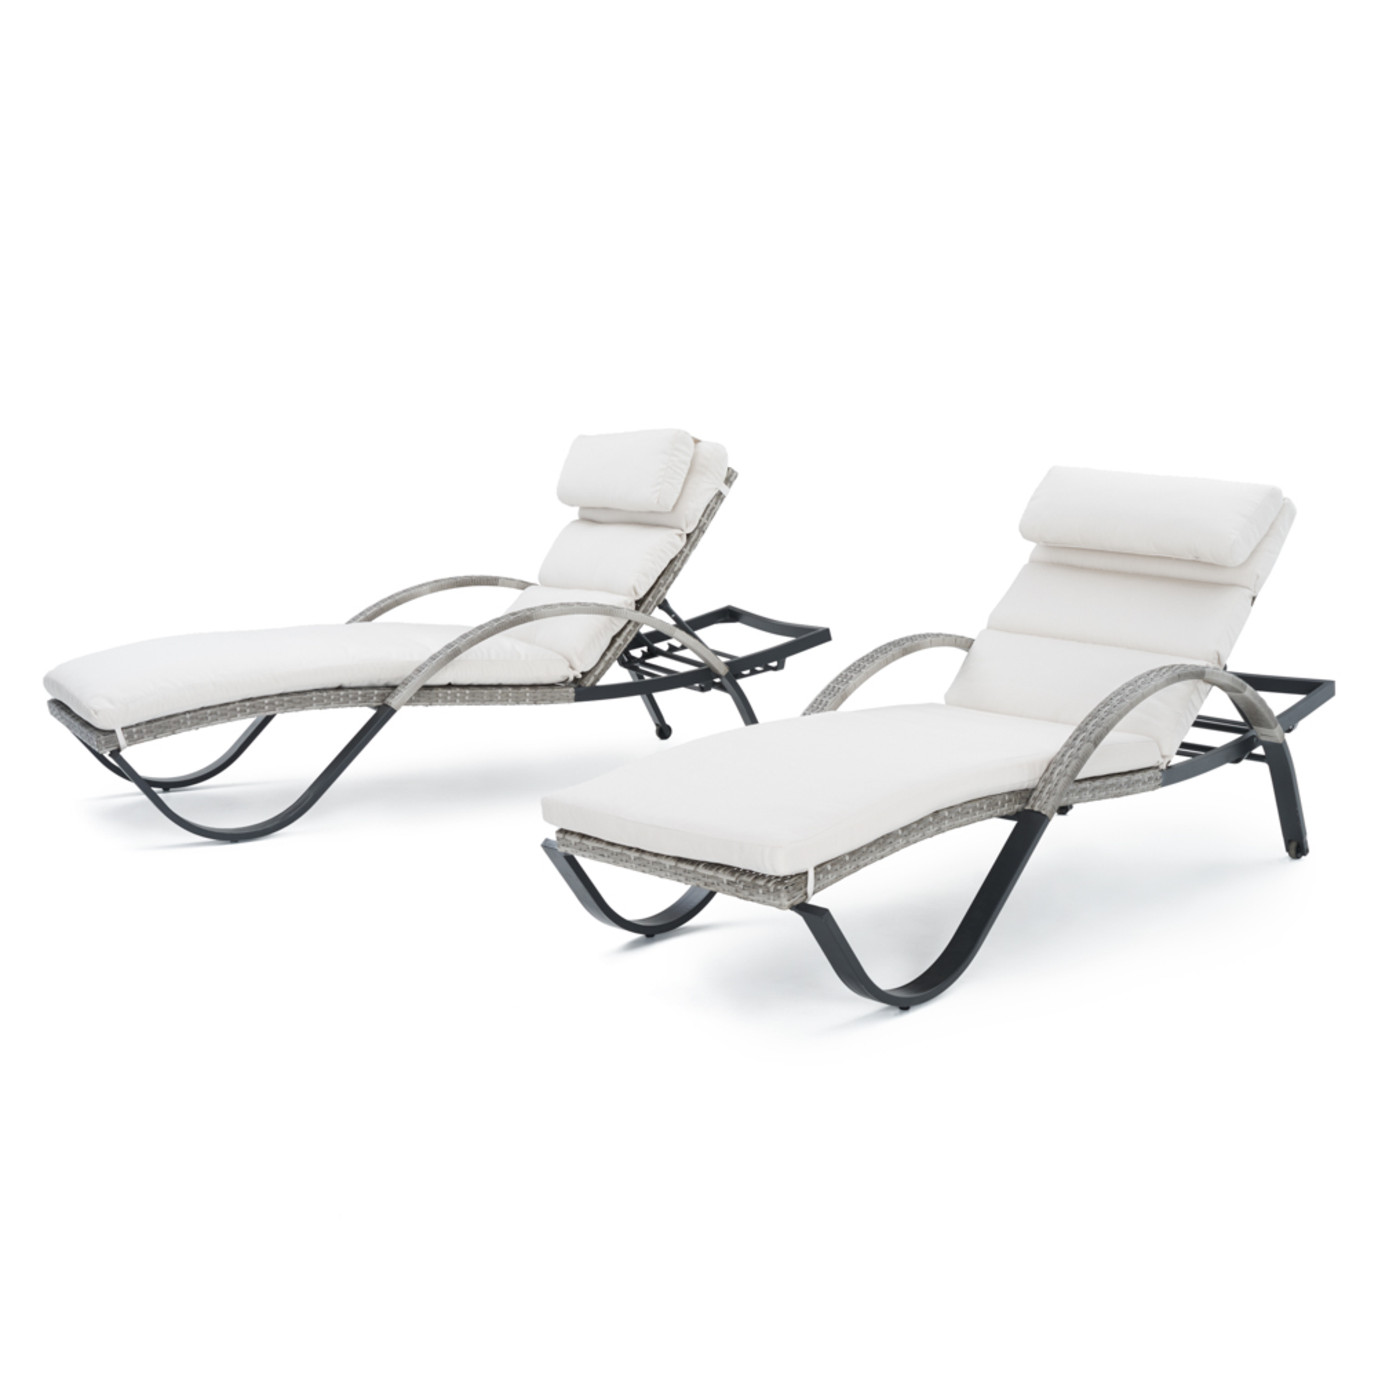 Cannes™ Chaise Lounges with Cushions - Moroccan Cream